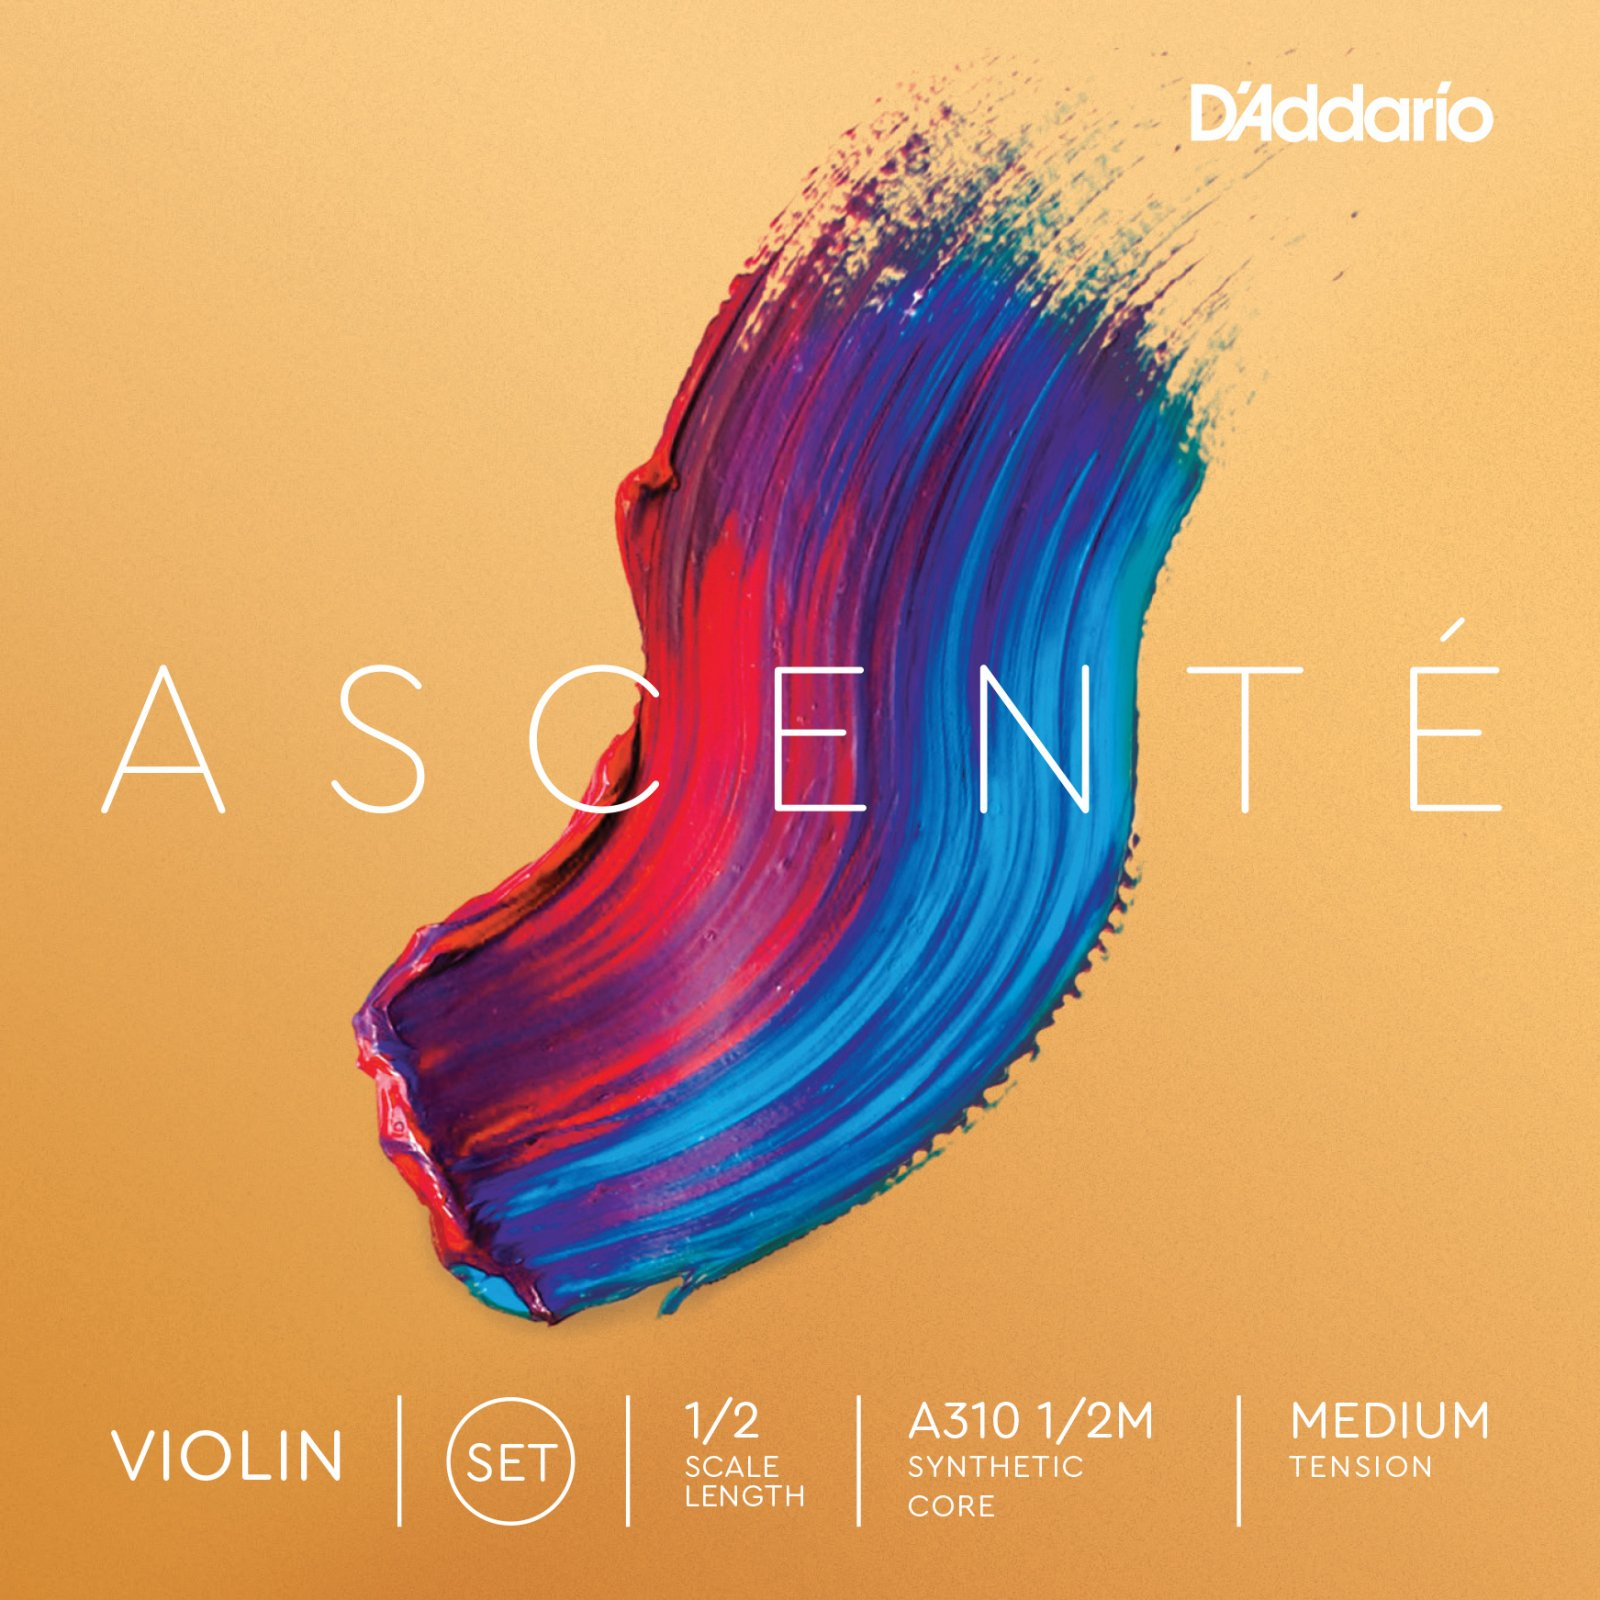 D'Addario Ascente Violin String Set Medium 1/2 (A310)